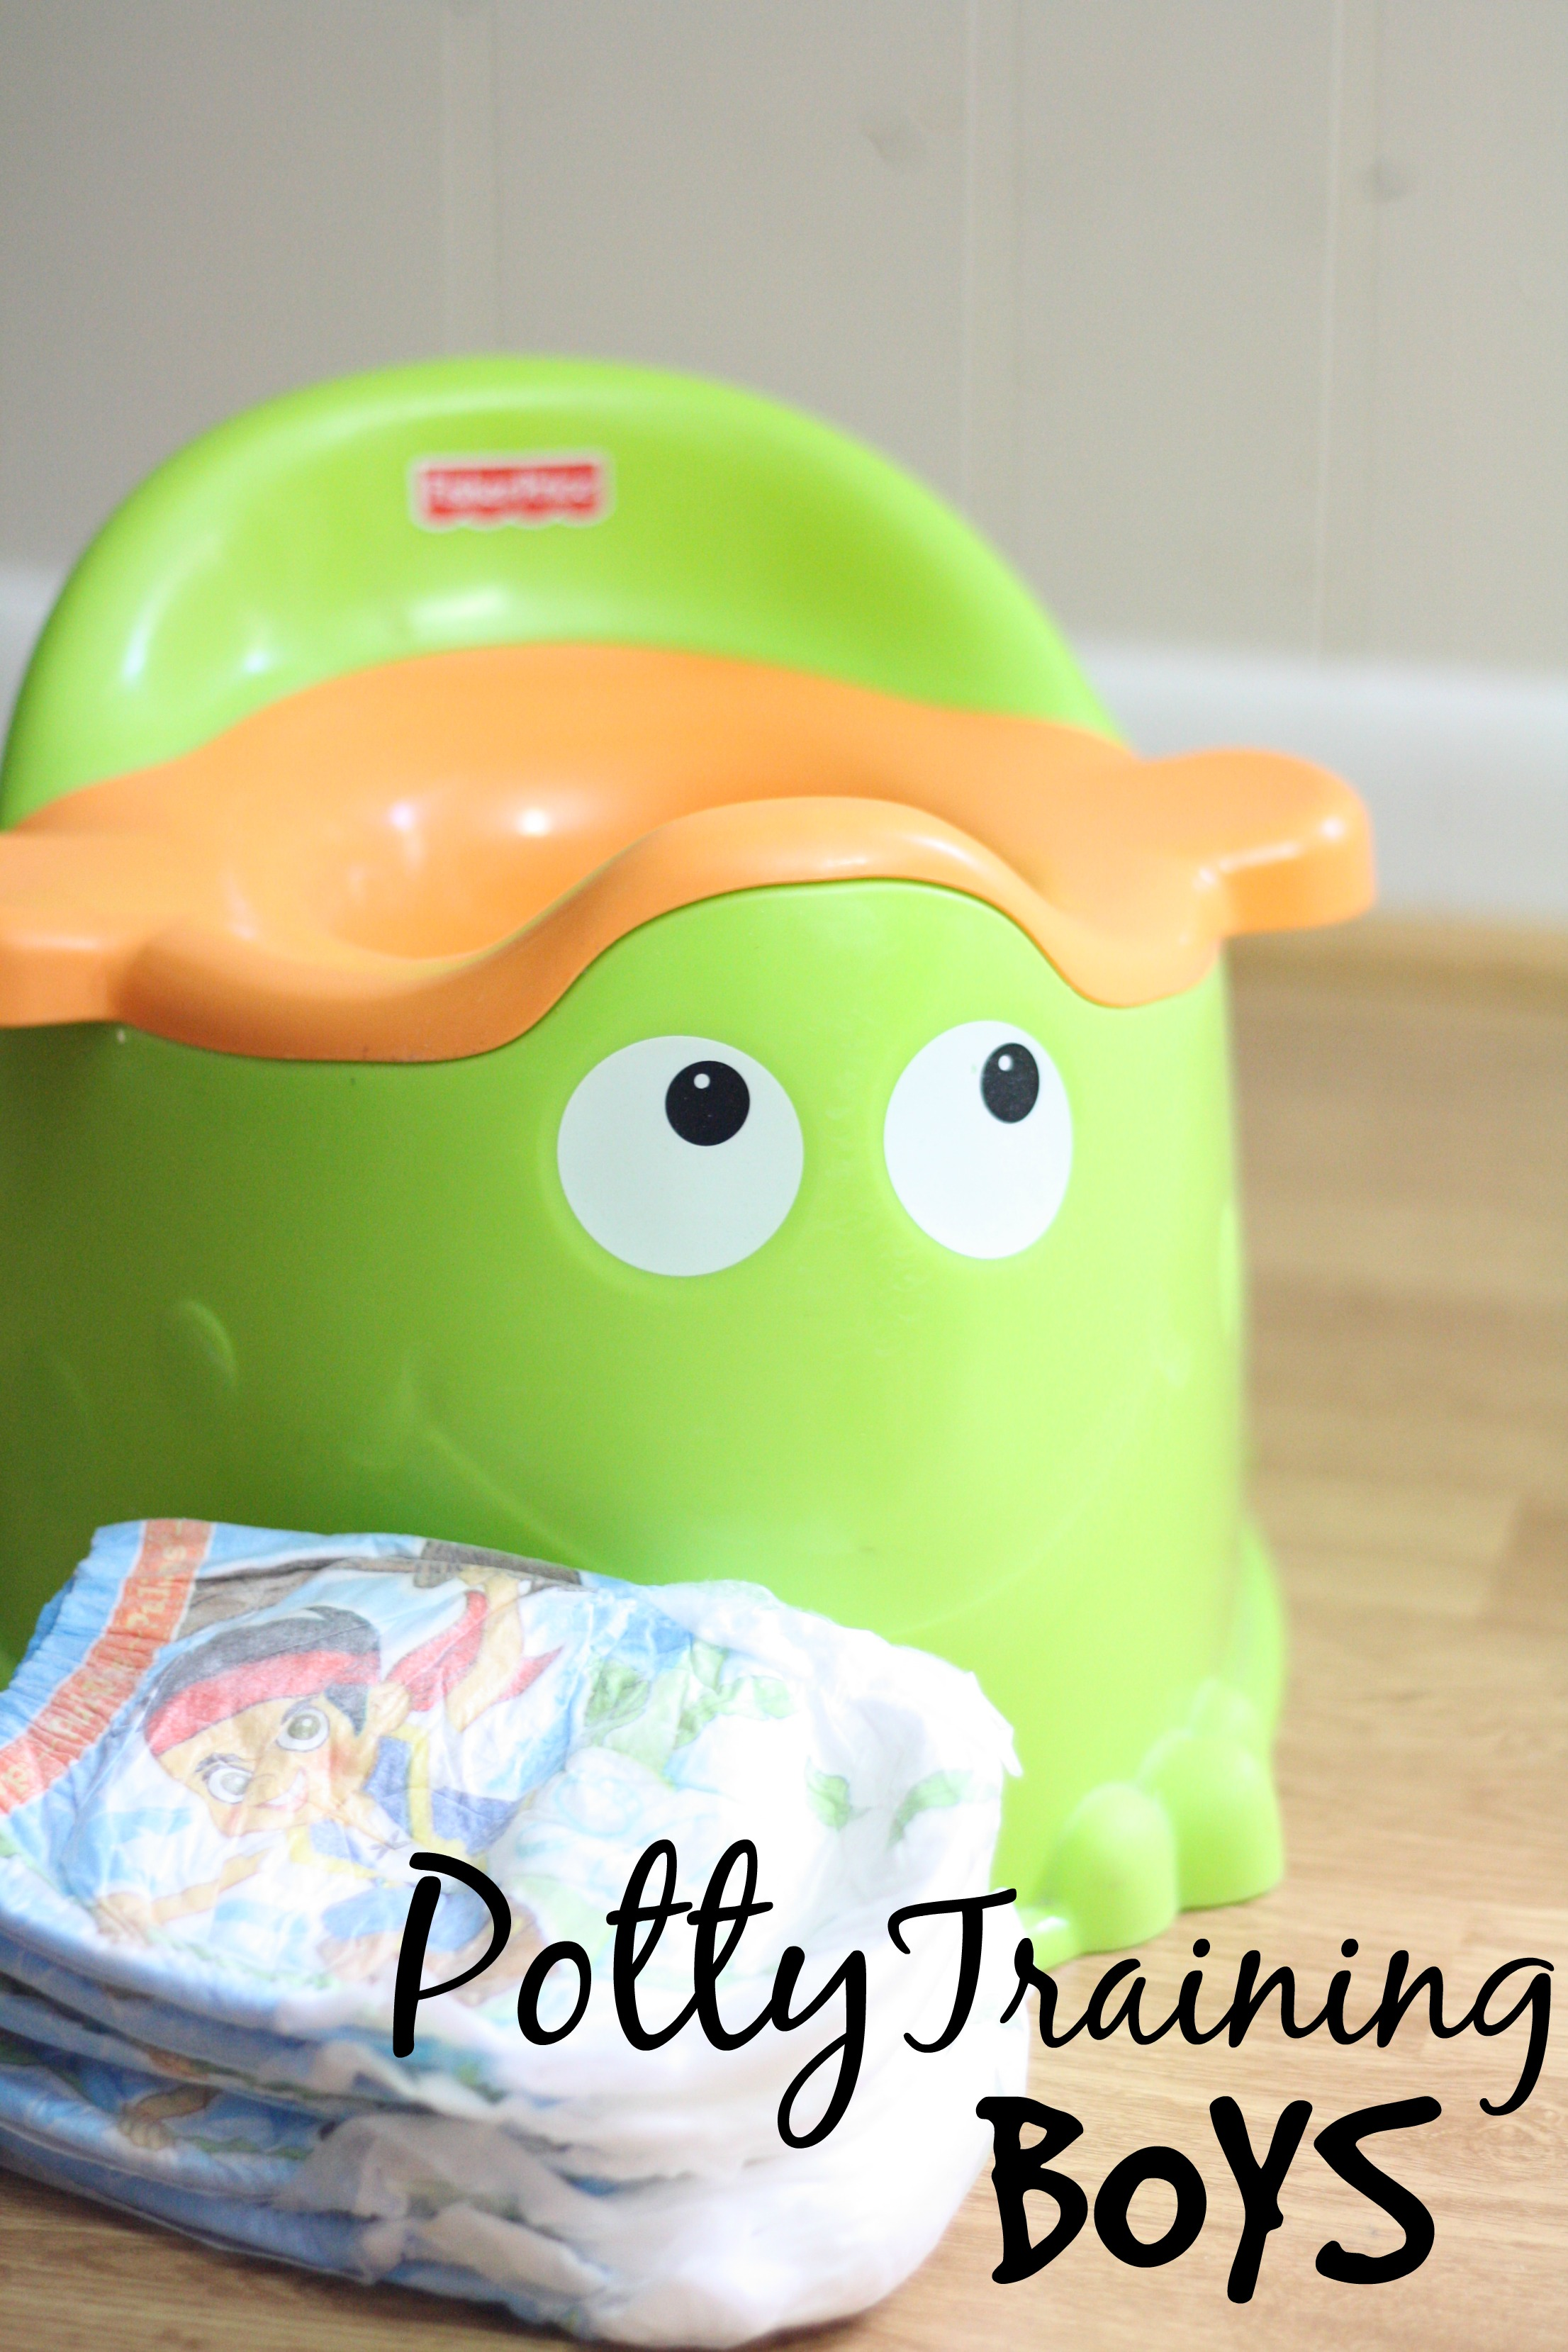 how to potty train a boy quickly